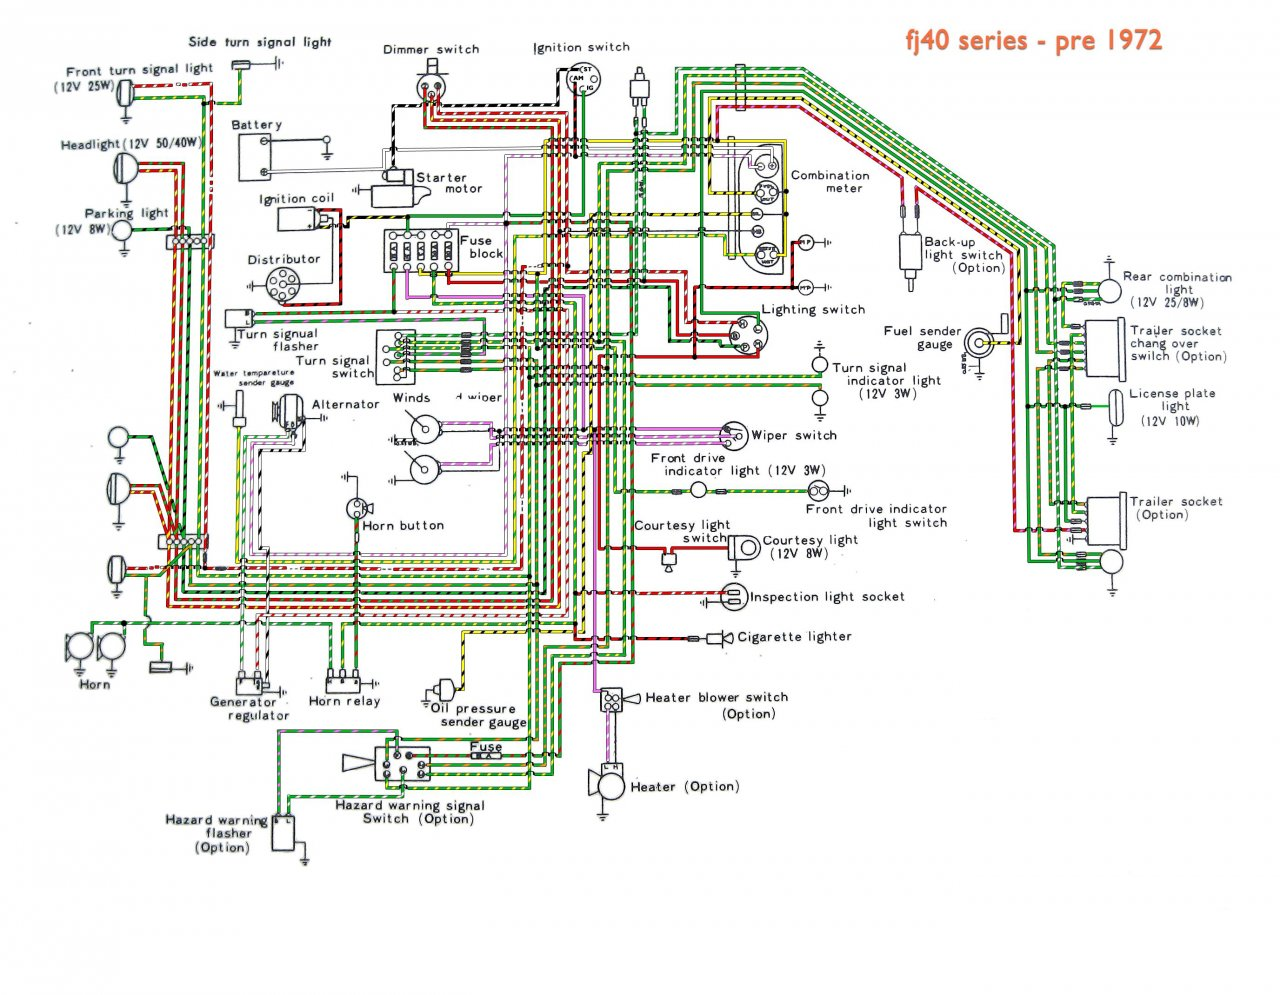 70 turn signal switch wiring diagram or pic ih8mud forum. Black Bedroom Furniture Sets. Home Design Ideas